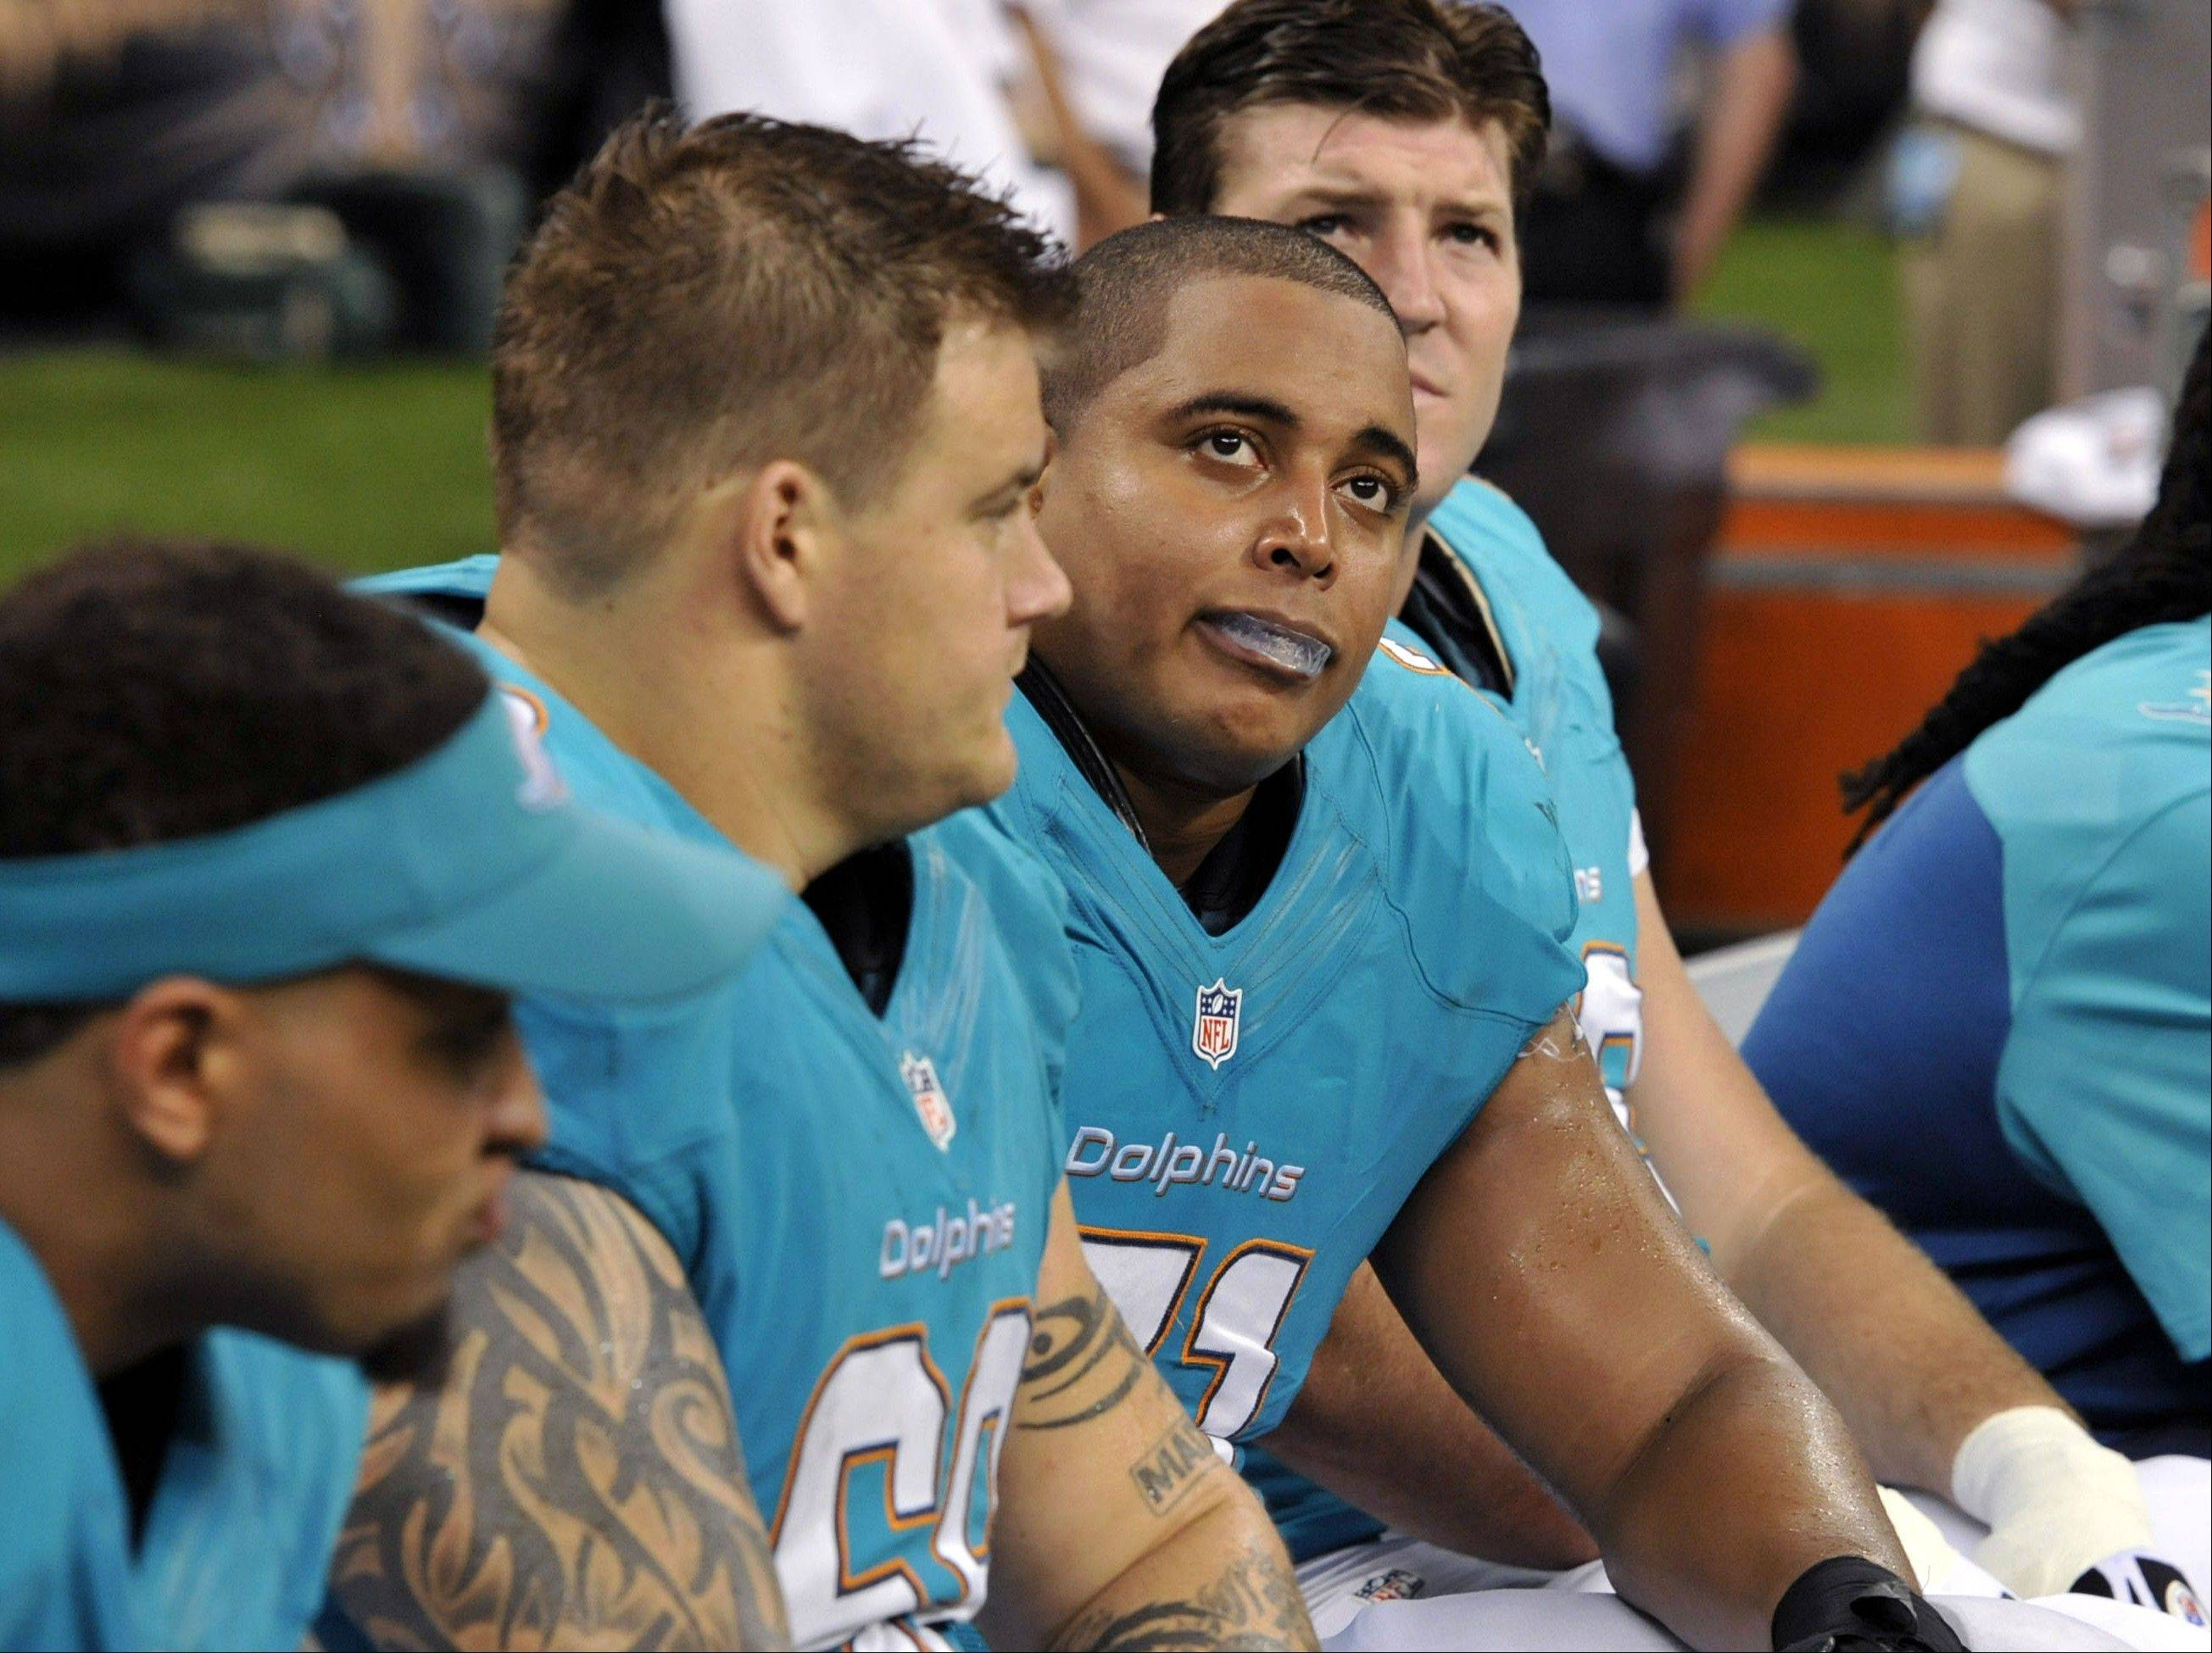 In this September file photo, Miami Dolphins guard Richie Incognito (68), center left, and tackle Jonathan Martin (71), center right, sit on the bench during a game against the Saints in New Orleans. The Dolphins' bullying issue between the two players is just one of the NFL's latest unwanted storylines.